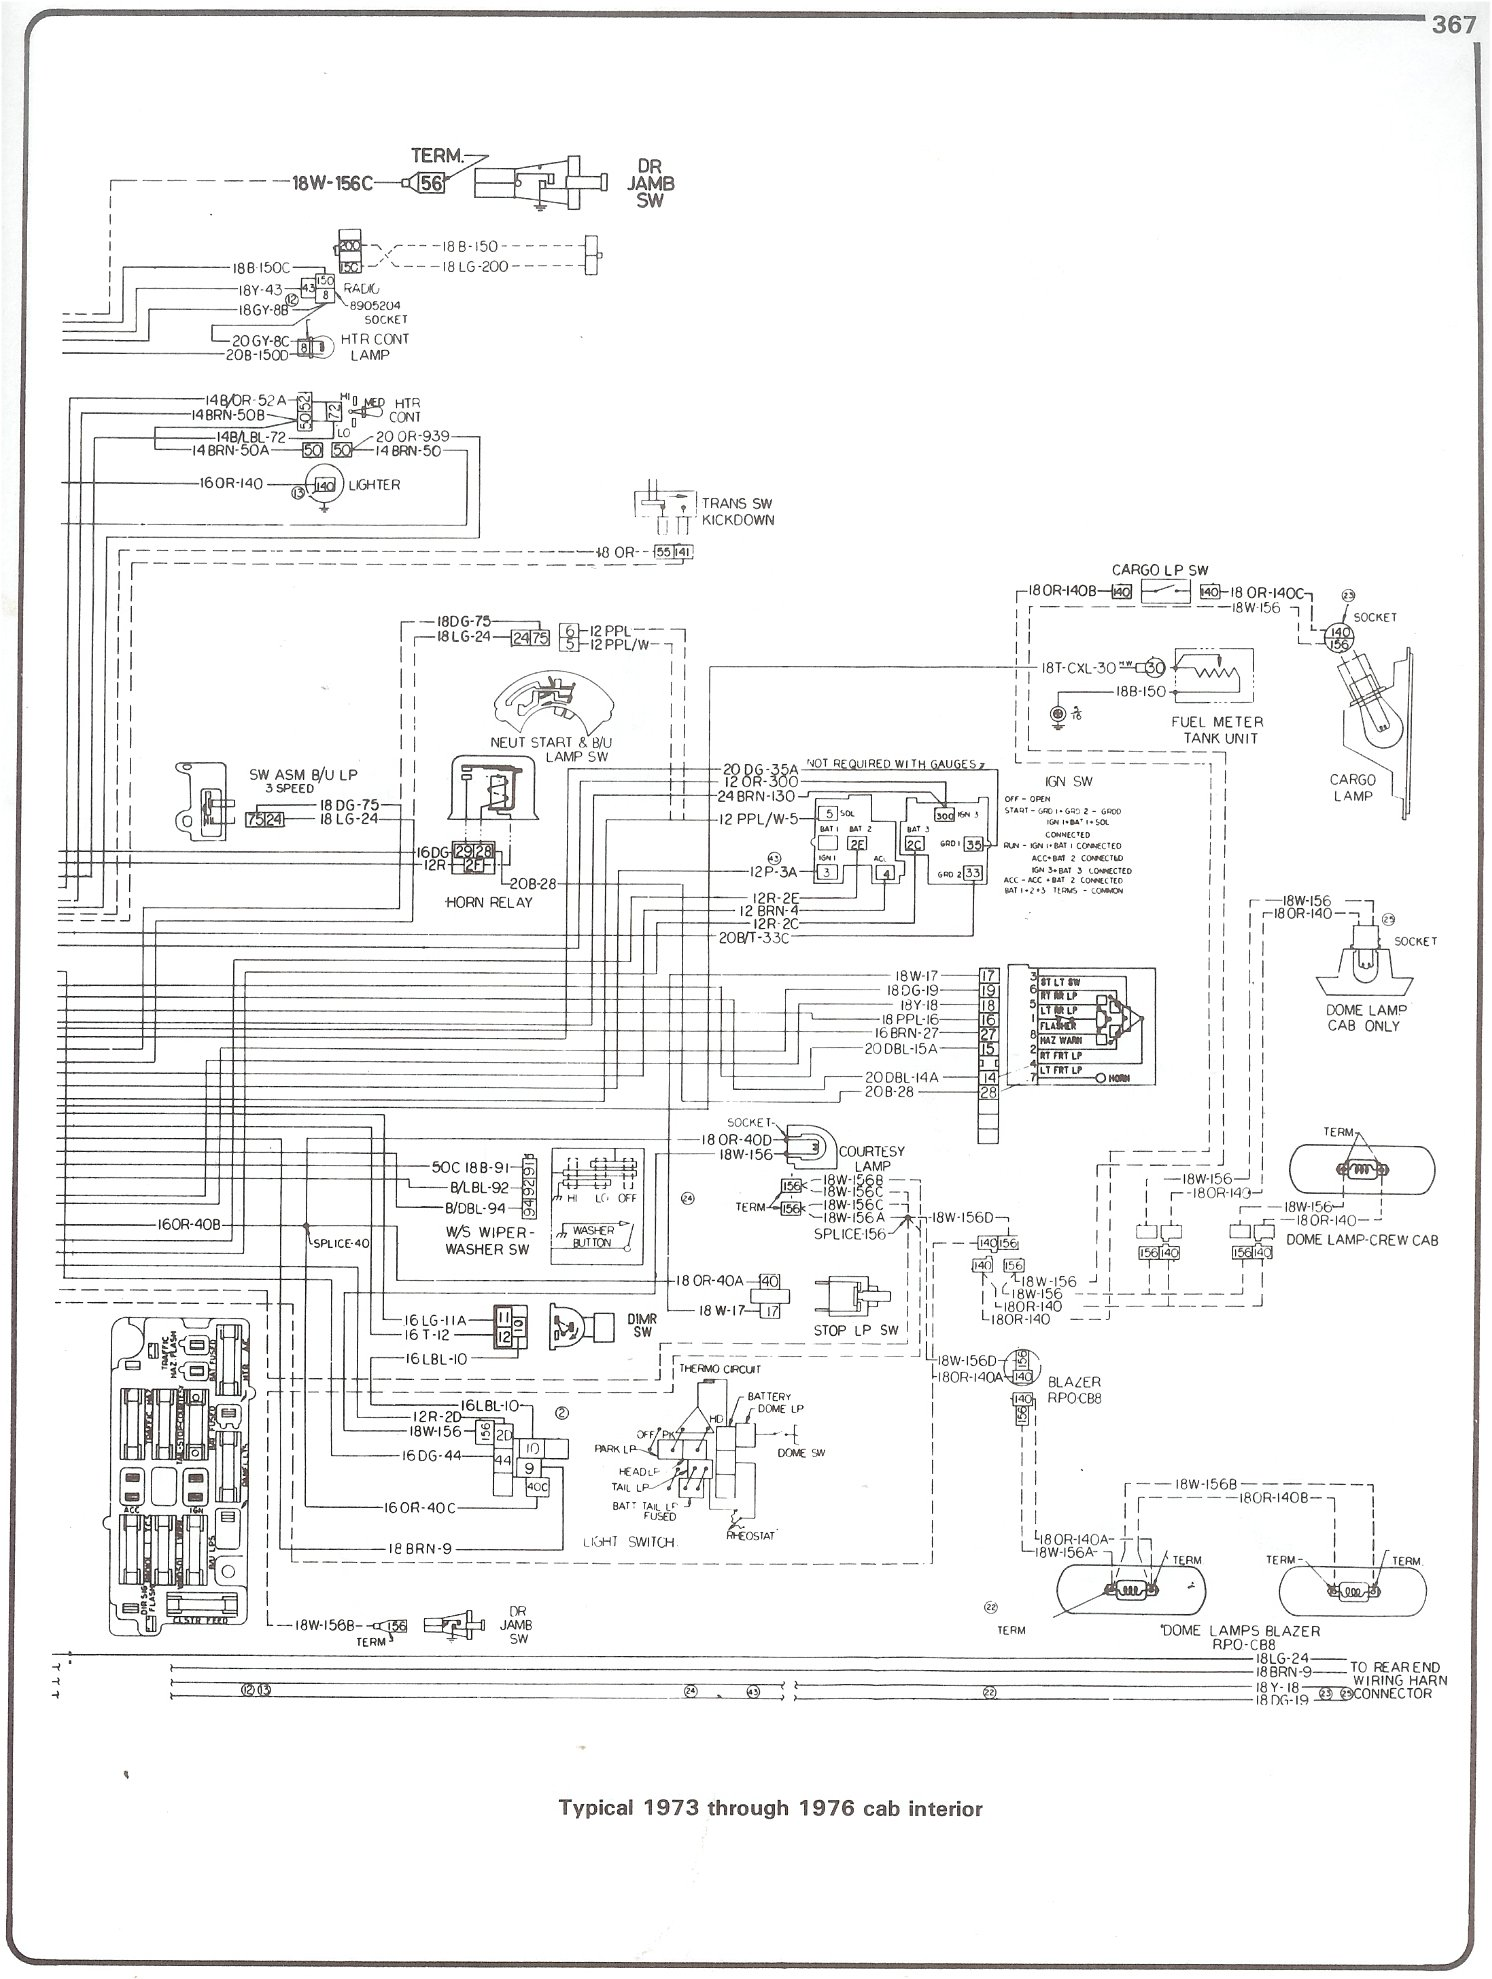 76 Chevy Pickup Wiring Diagram | Wiring Diagram Manual